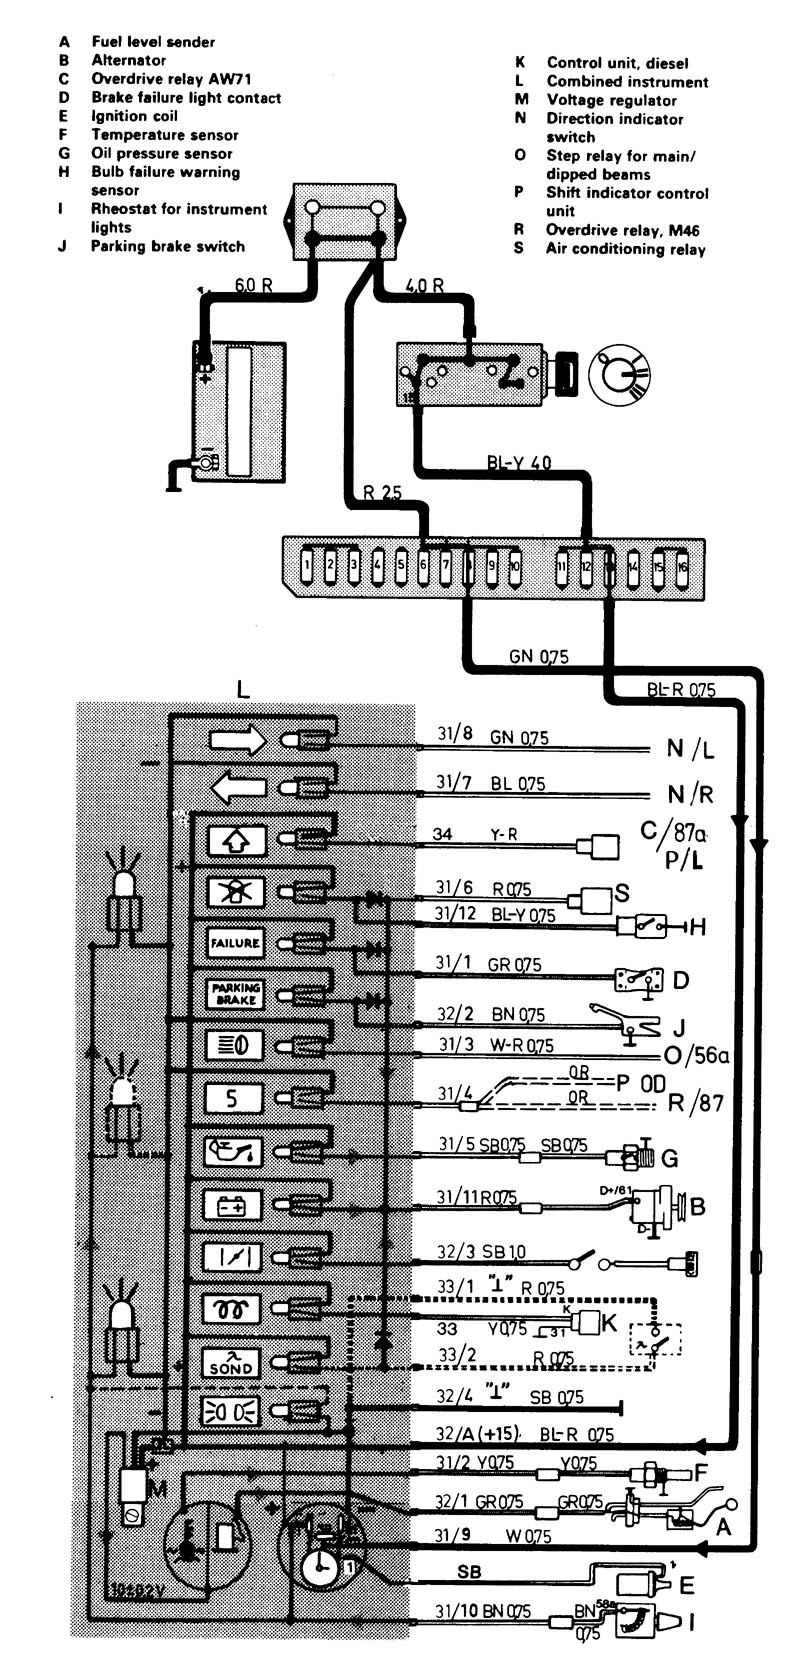 Volvo Wiring Diagram Instrumentation on Volvo 240 Wiring Diagram